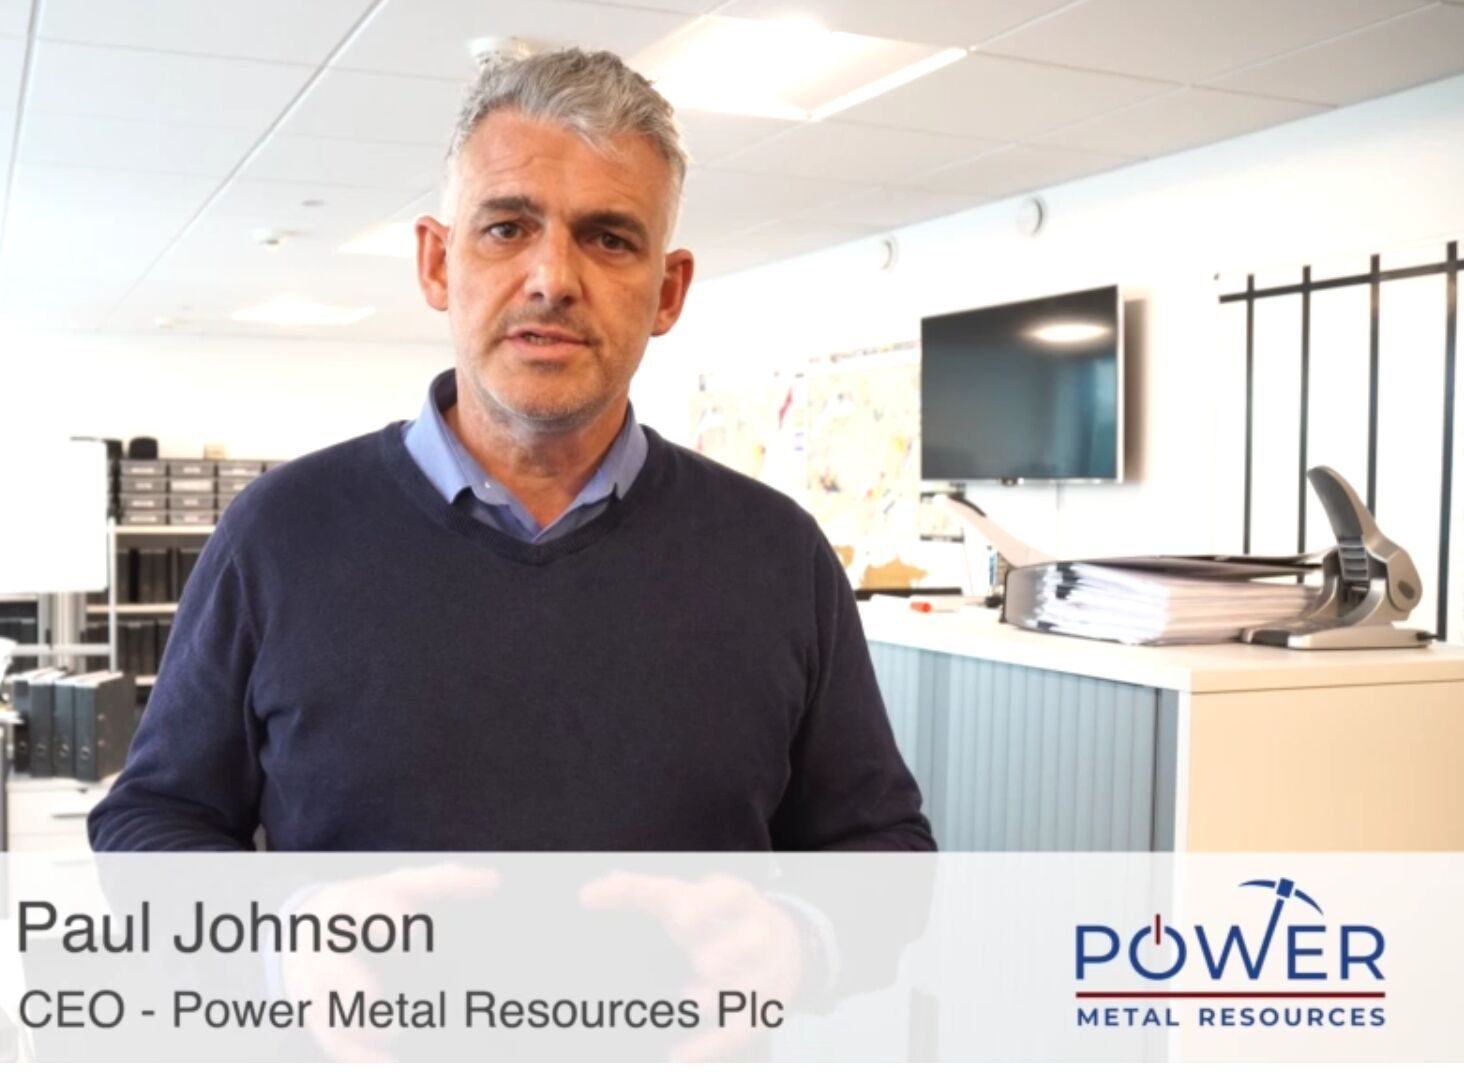 VIDEO: Power Metal's Paul Johnson on company's exciting plans and taking over as CEO (POW)